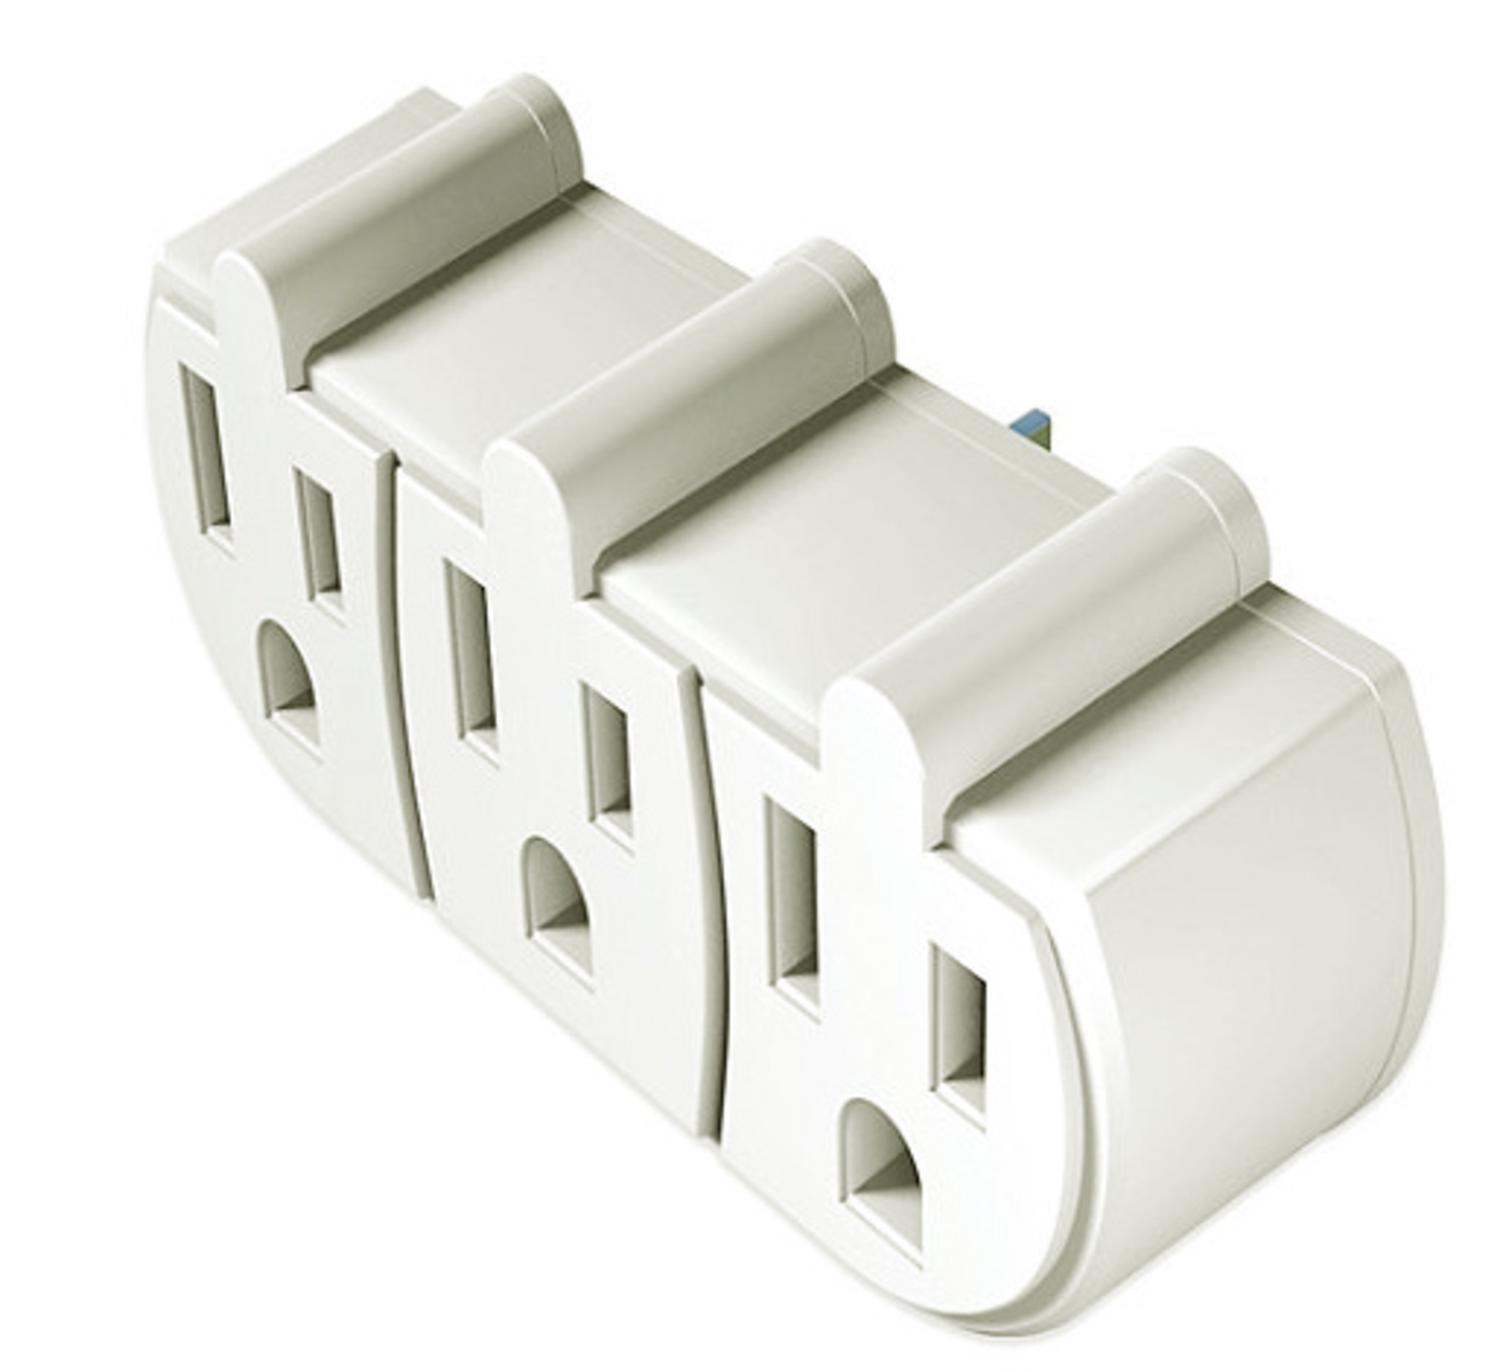 Stanley White 3-Prong Wall Adapter with 3 Grounded Outlets